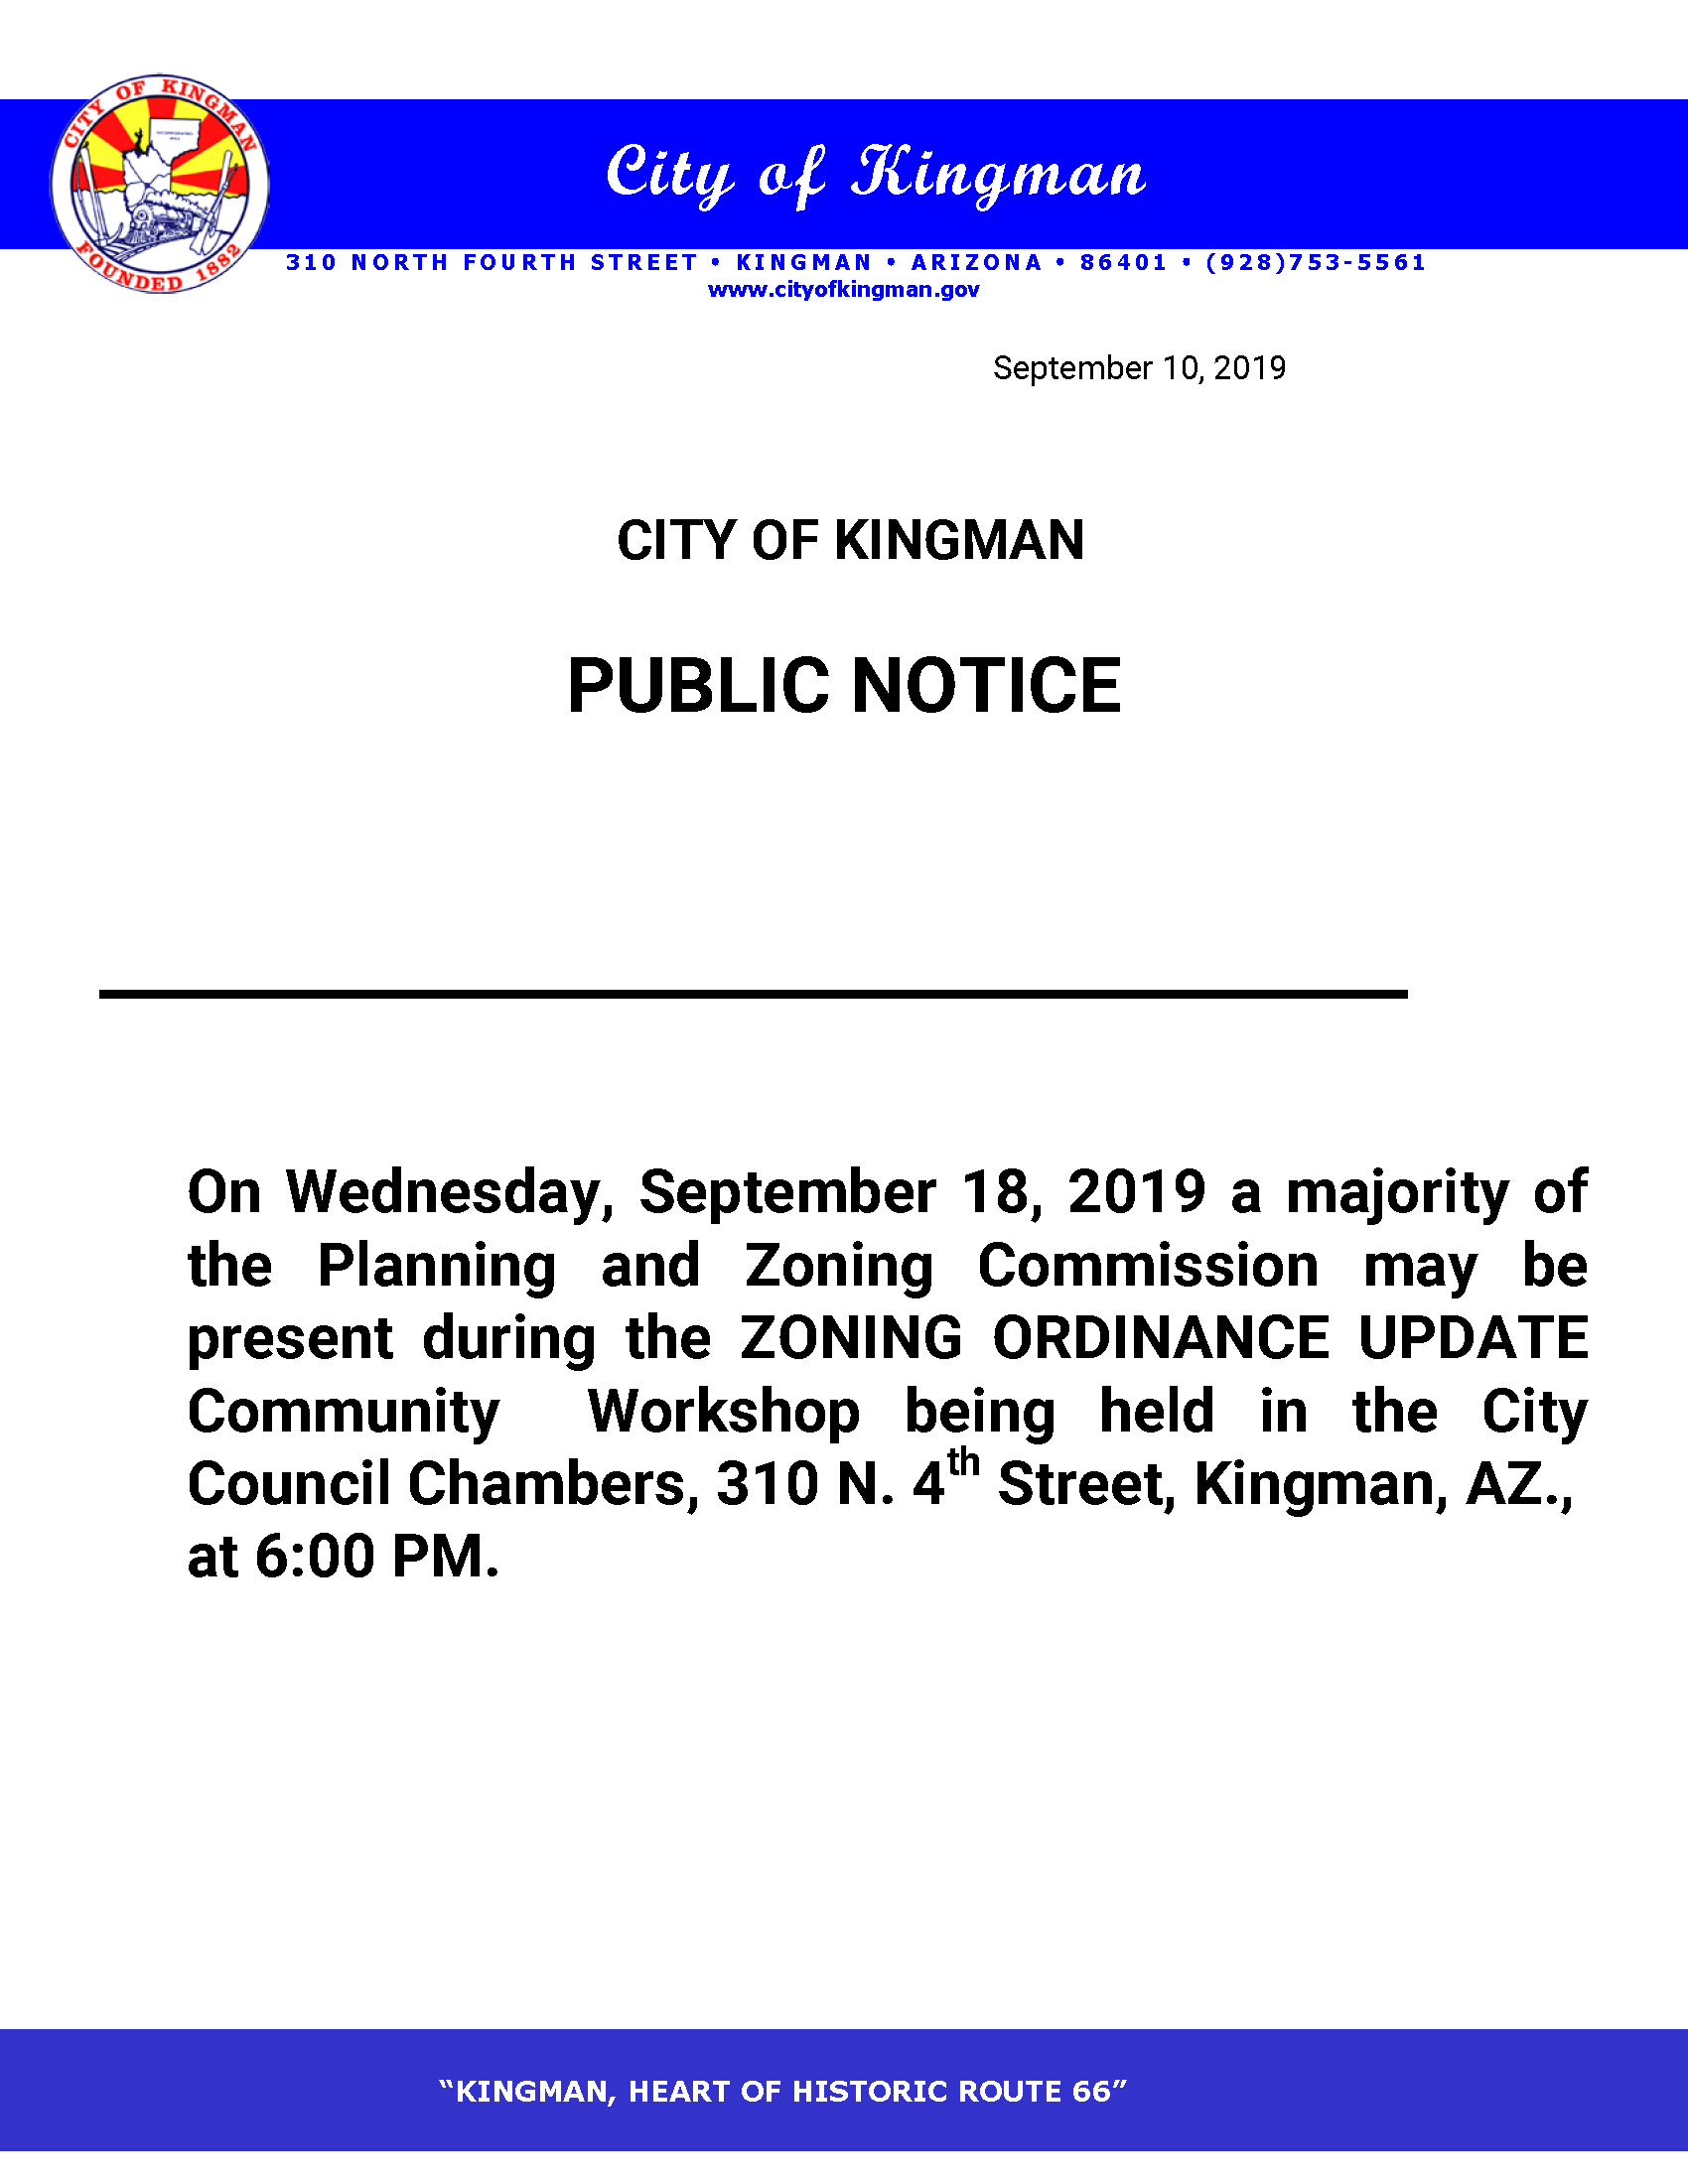 Zoning Ordinance Community Workshop quorum notice